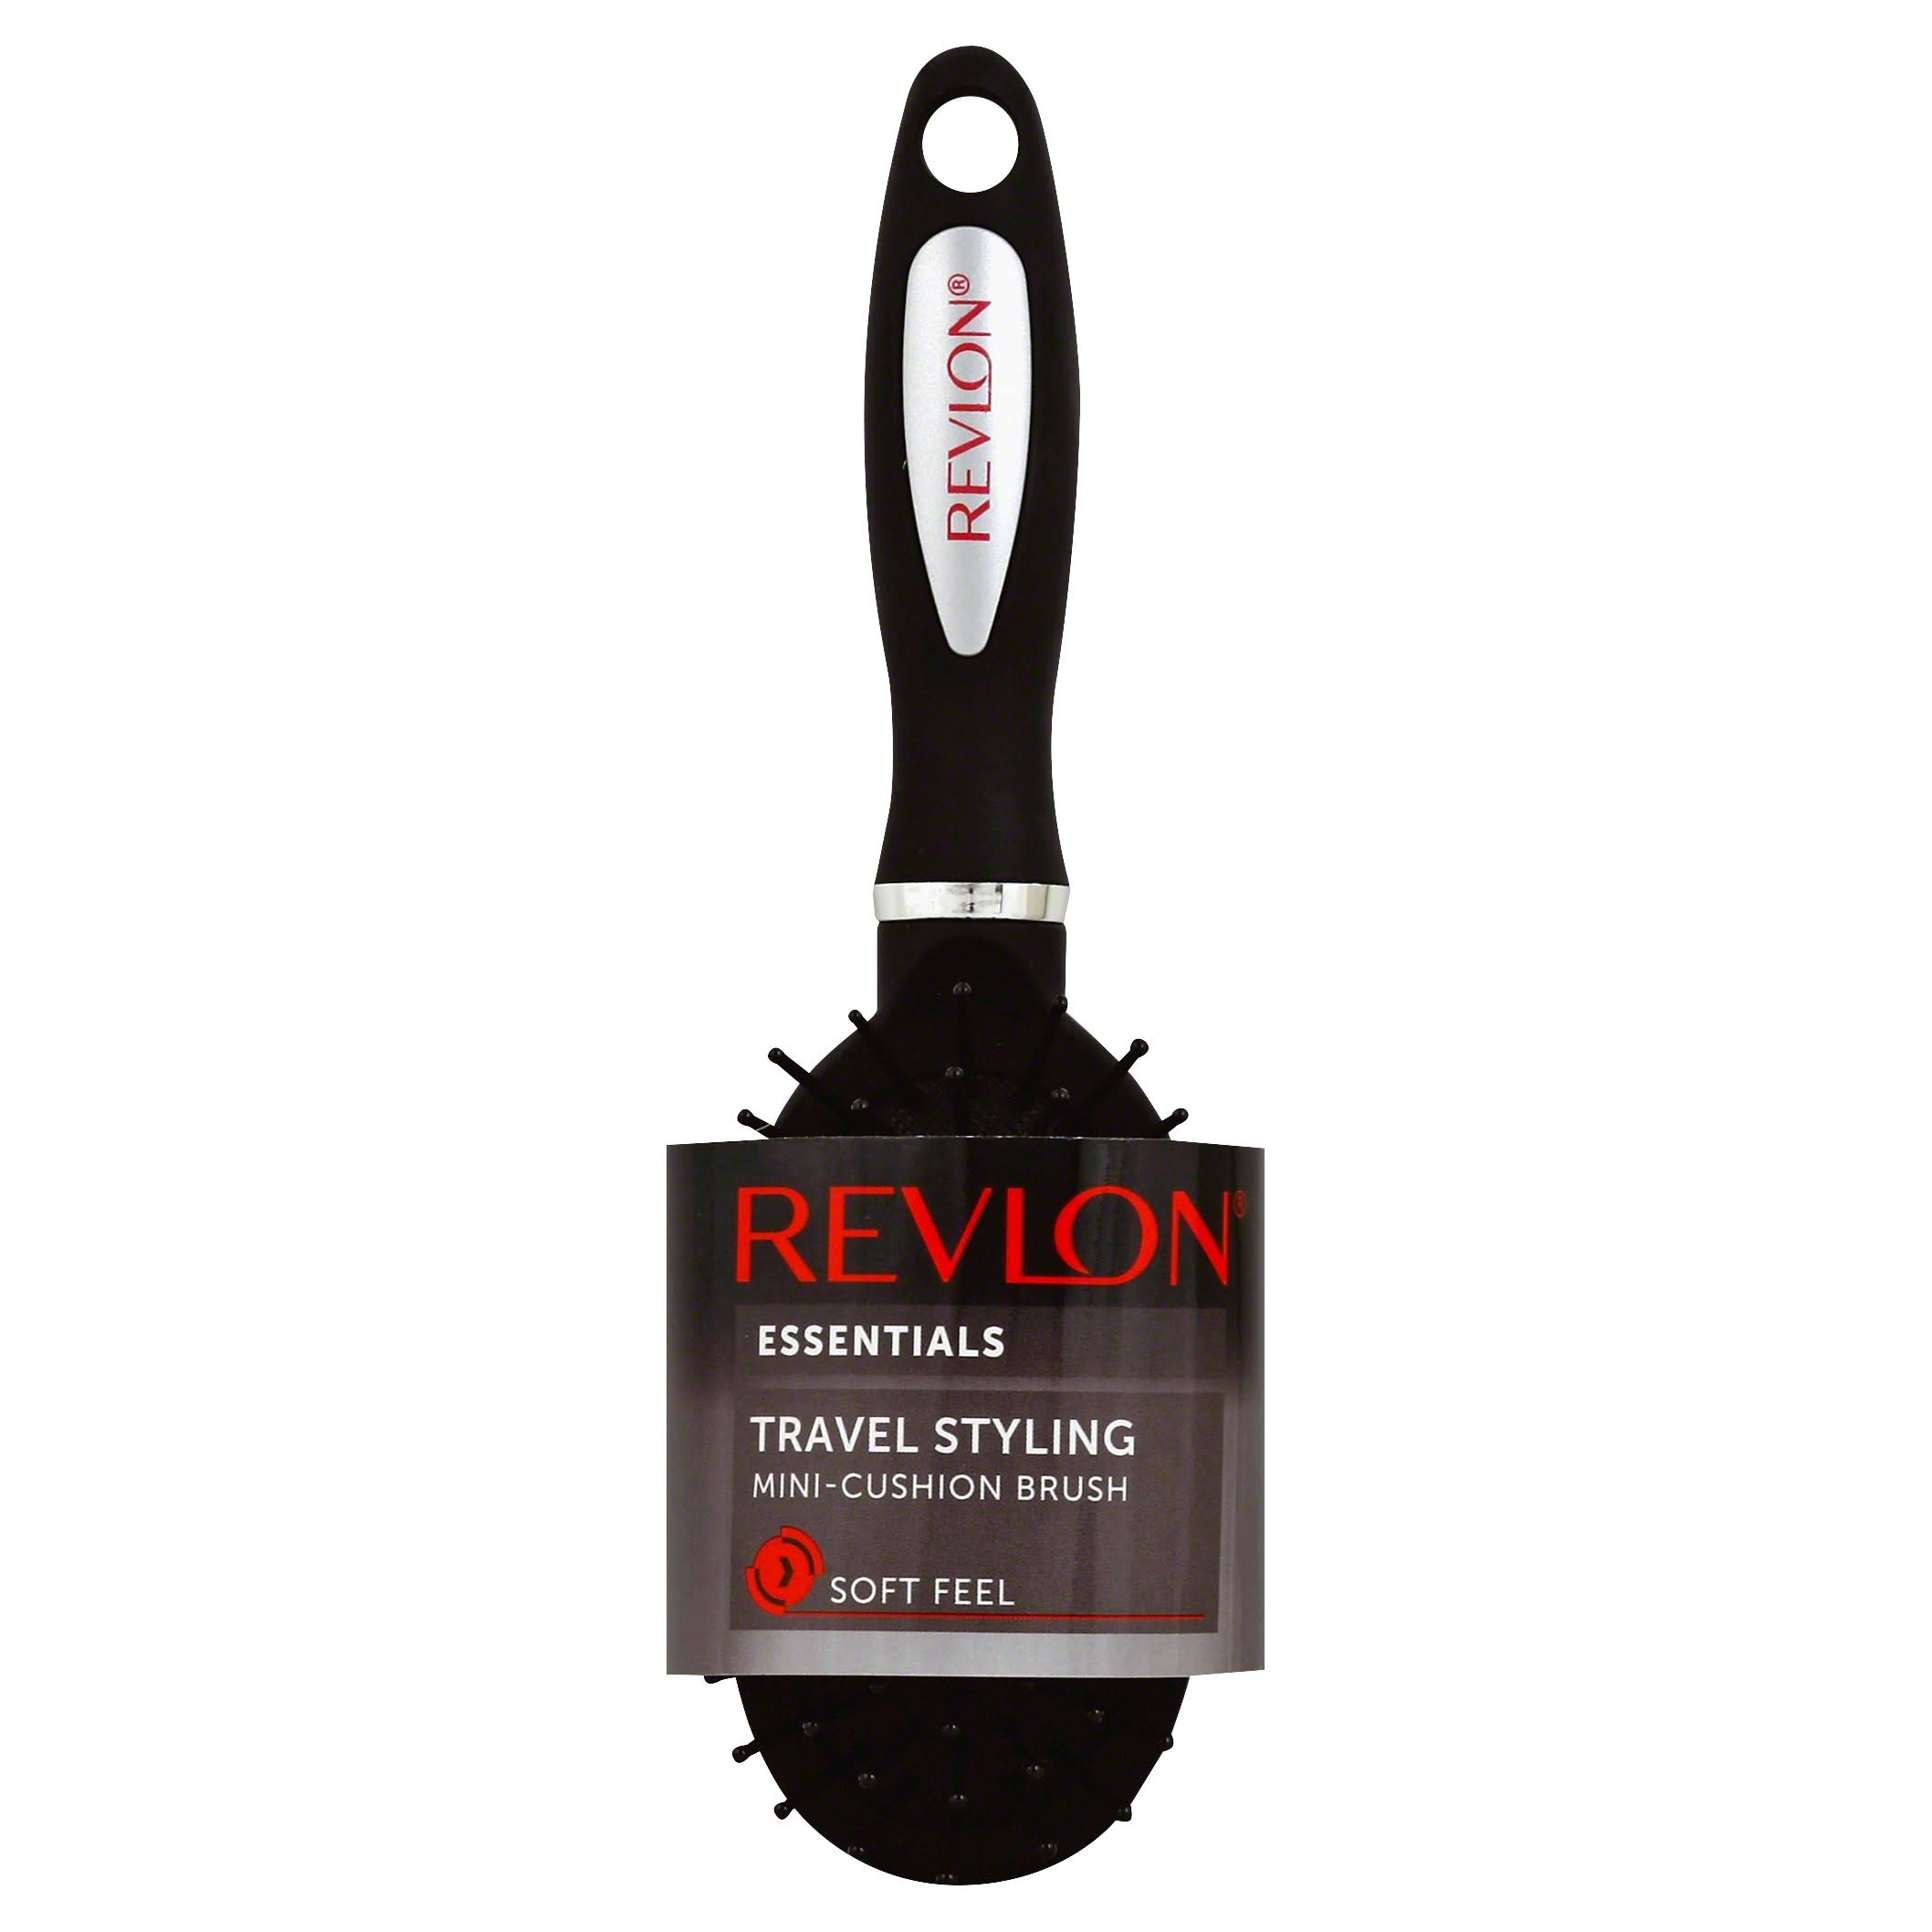 Revlon Essentials Brush, Mini-Cushion, Styling, Travel, Soft Feel